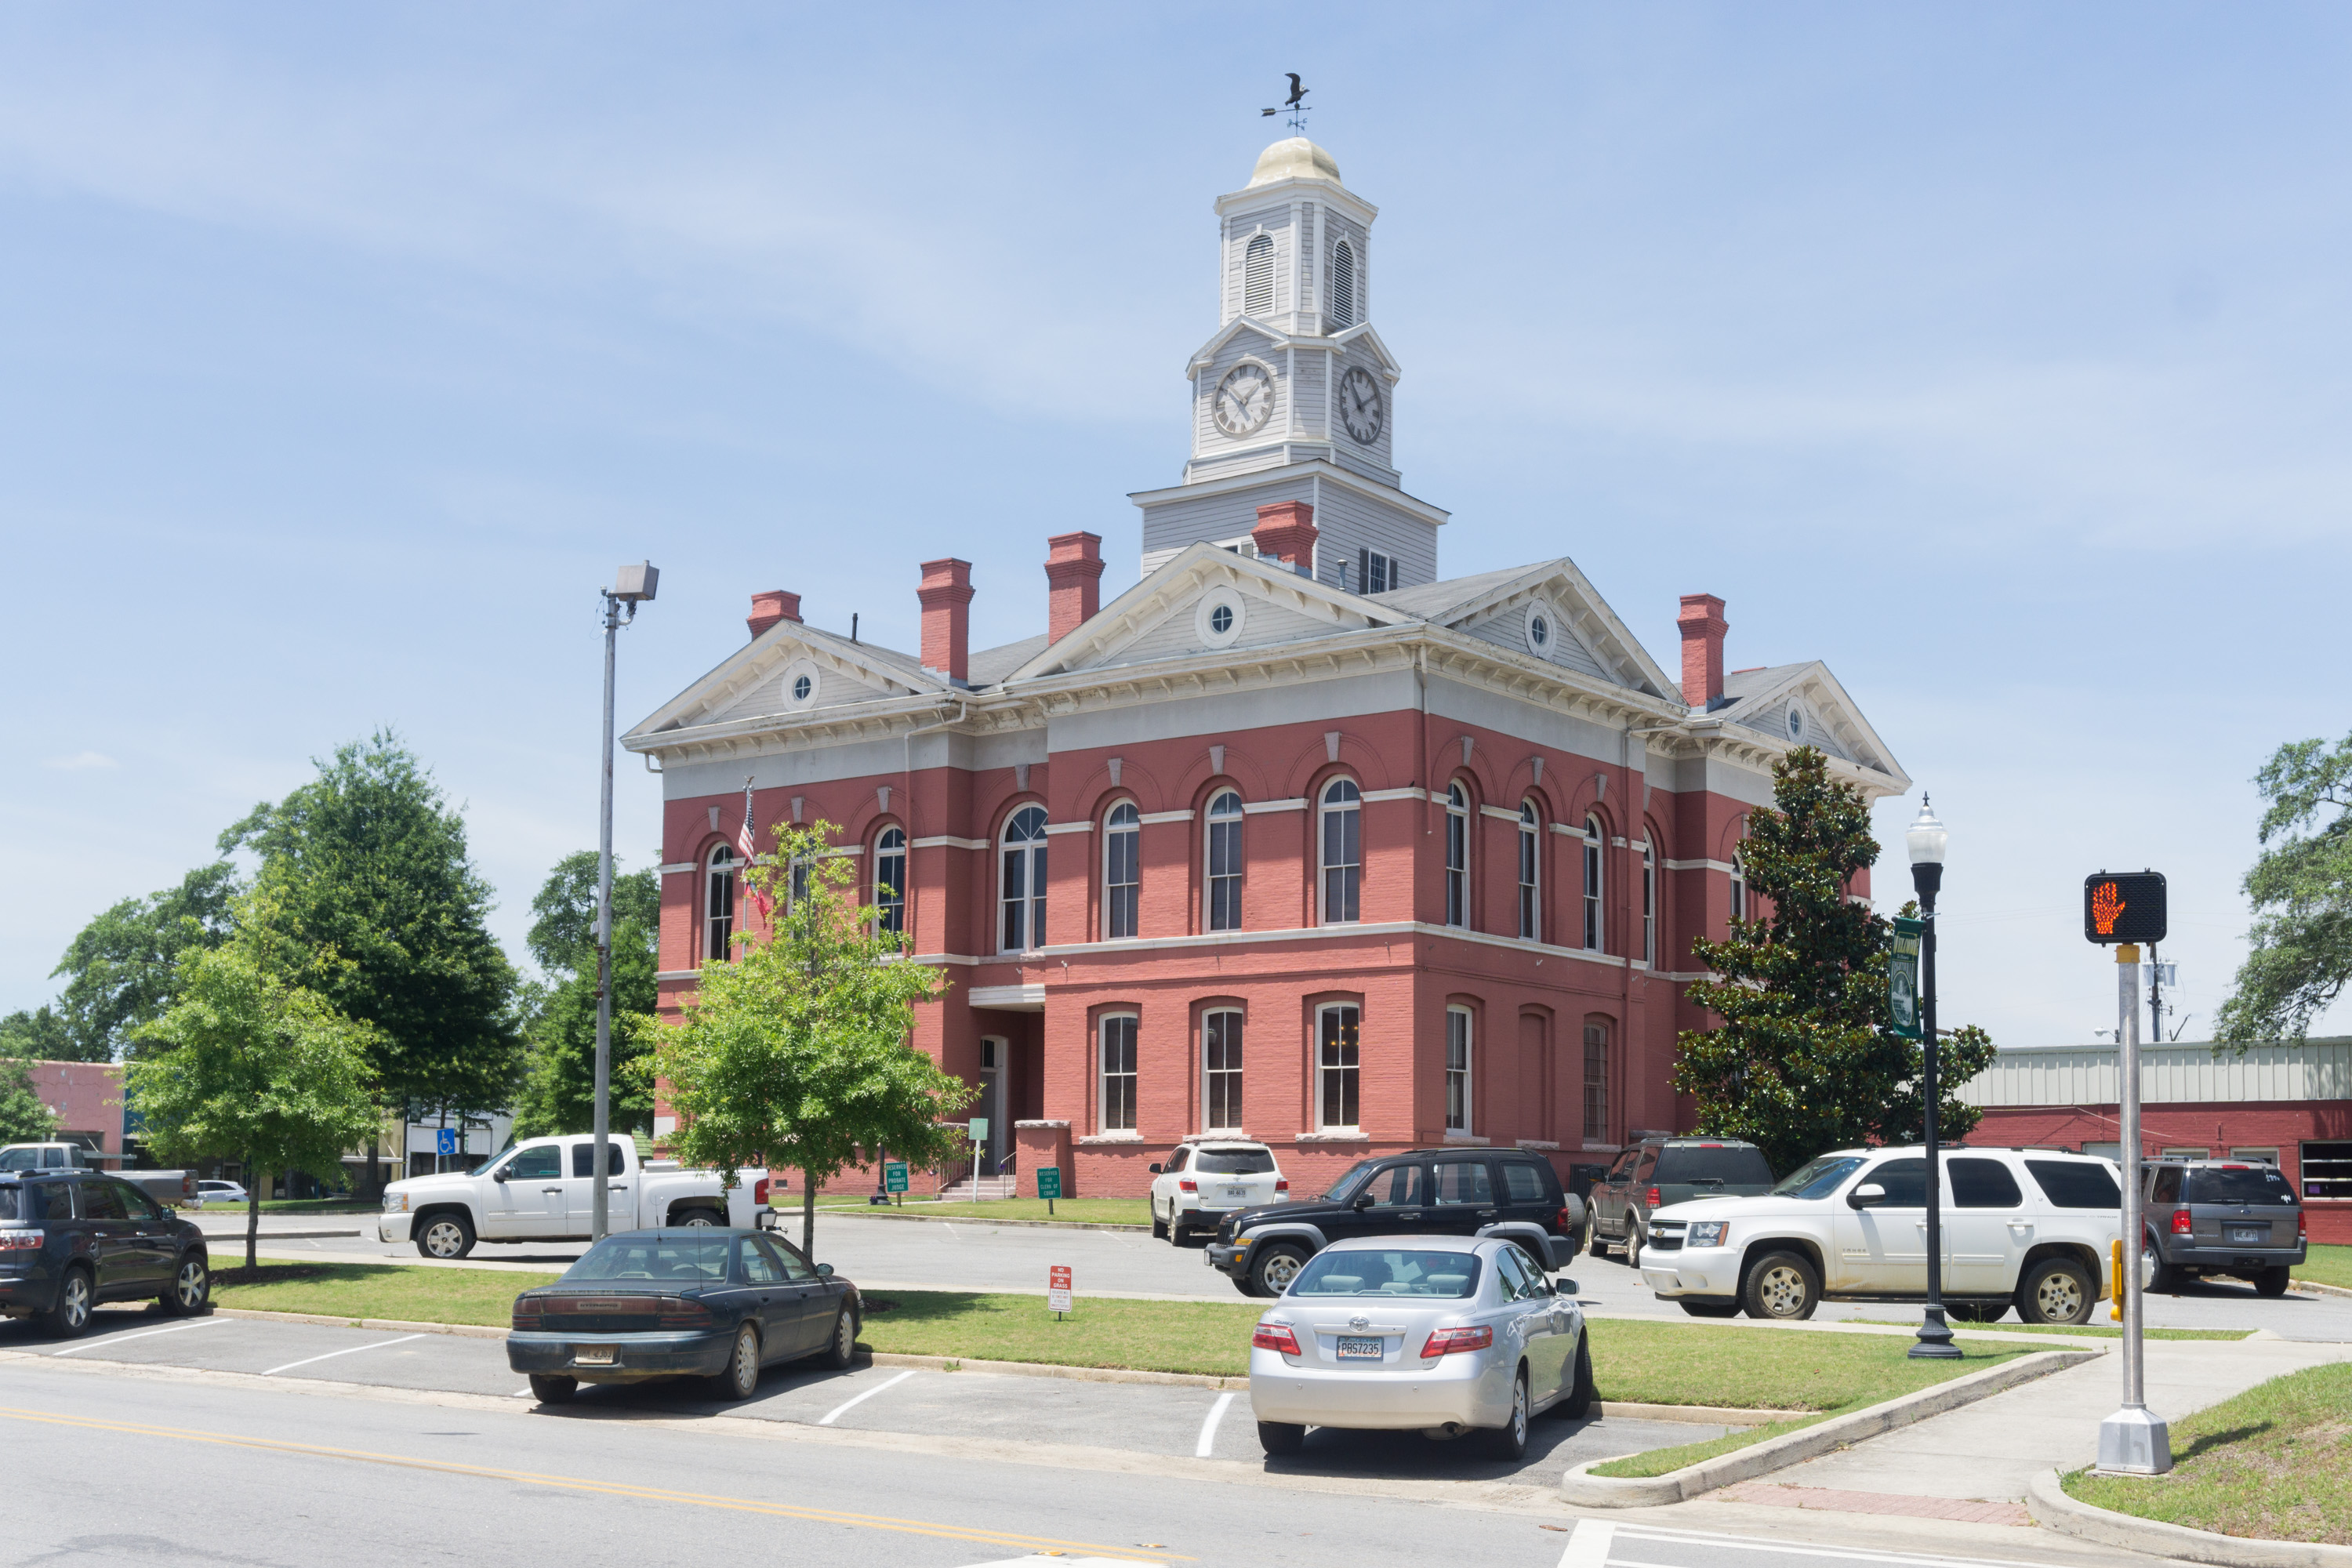 Washington_Wrightsville_courthouse3